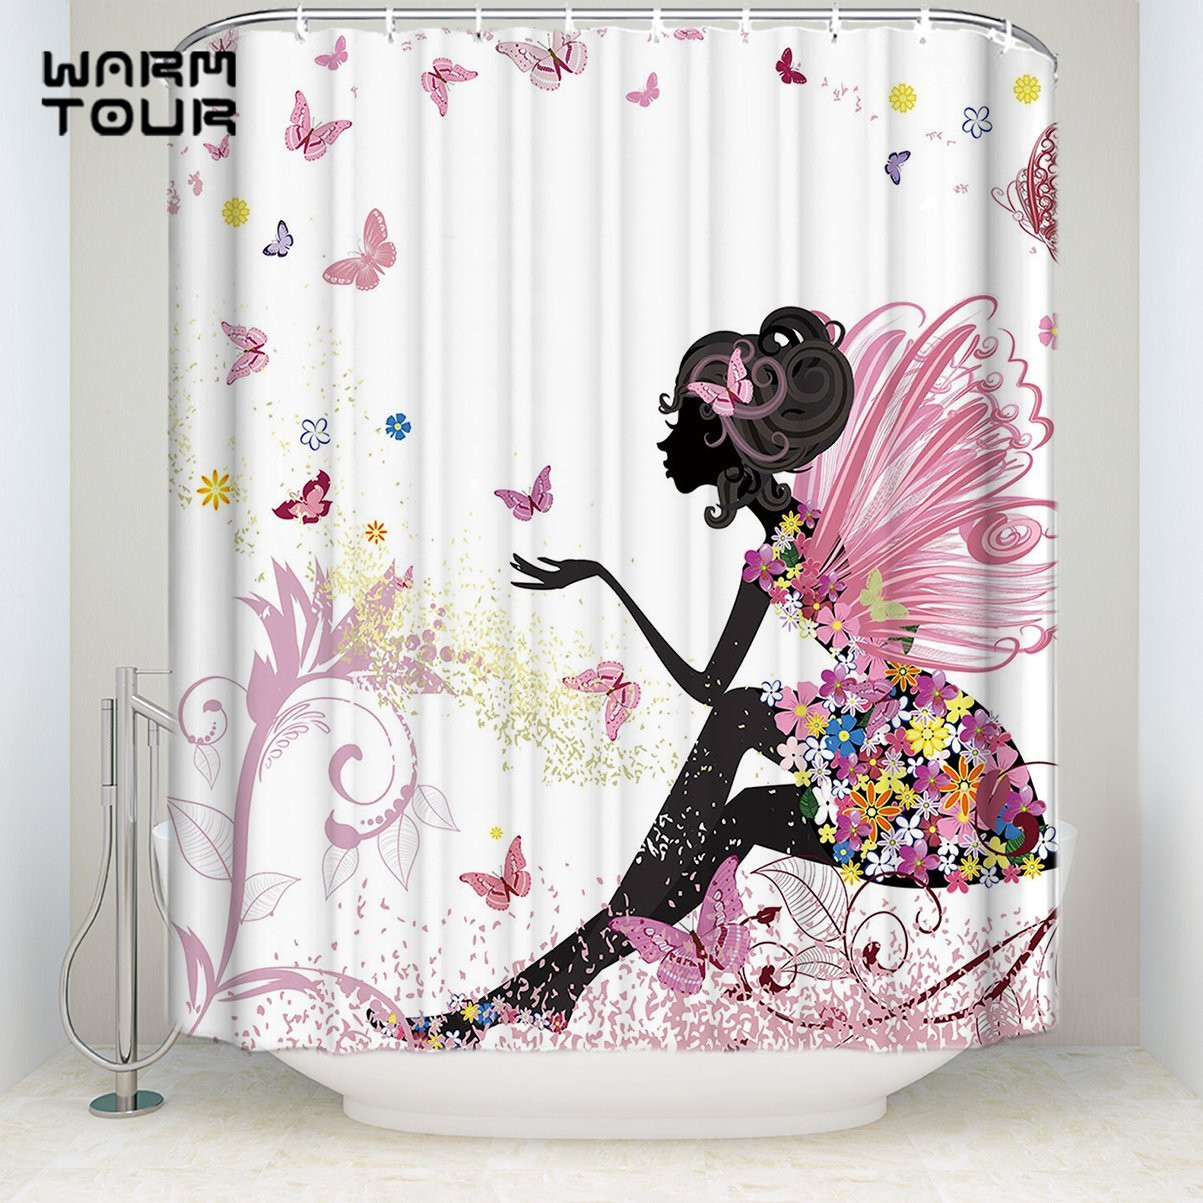 Us 16 23 30 Off Bath Shower Curtains Pink Flower Beauty Butterfly Fairy Mildew Resistant Bathroom Decor Sets With Hooks 72